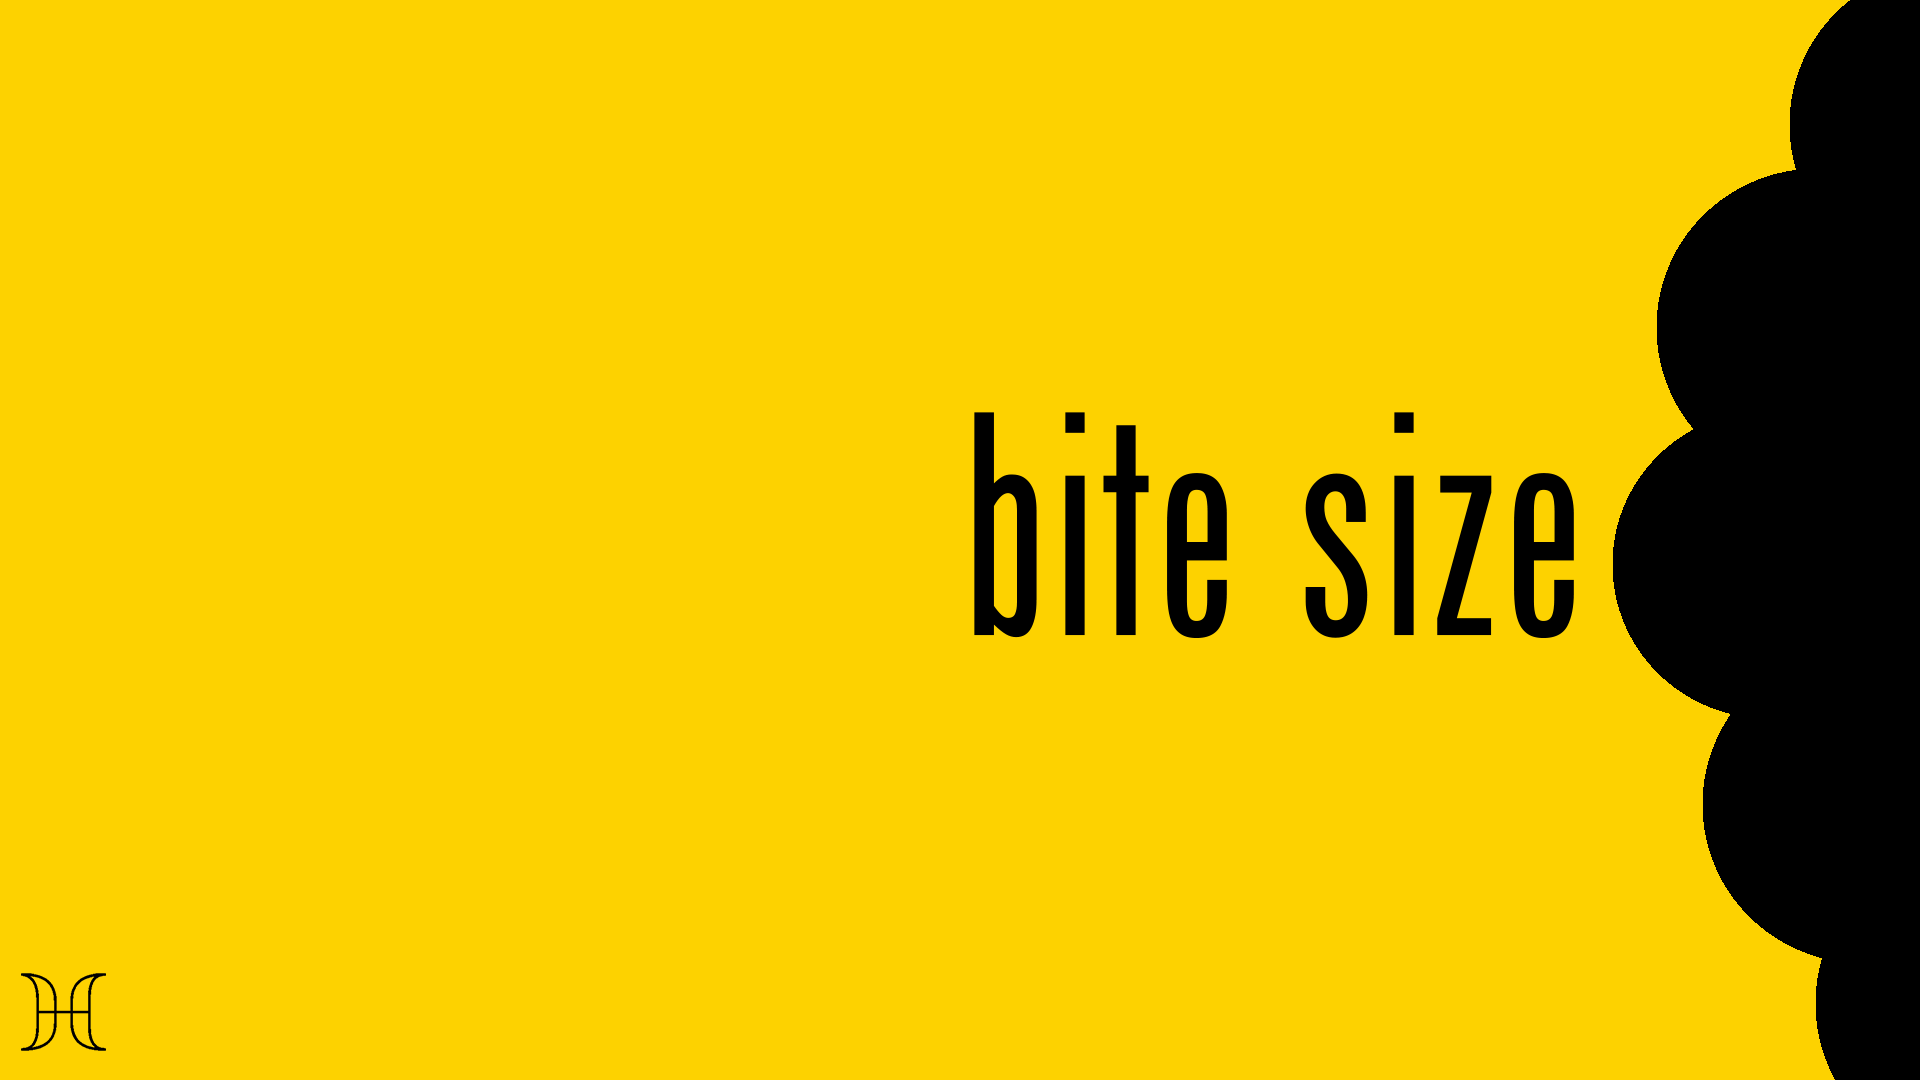 Current Series: Bite Size